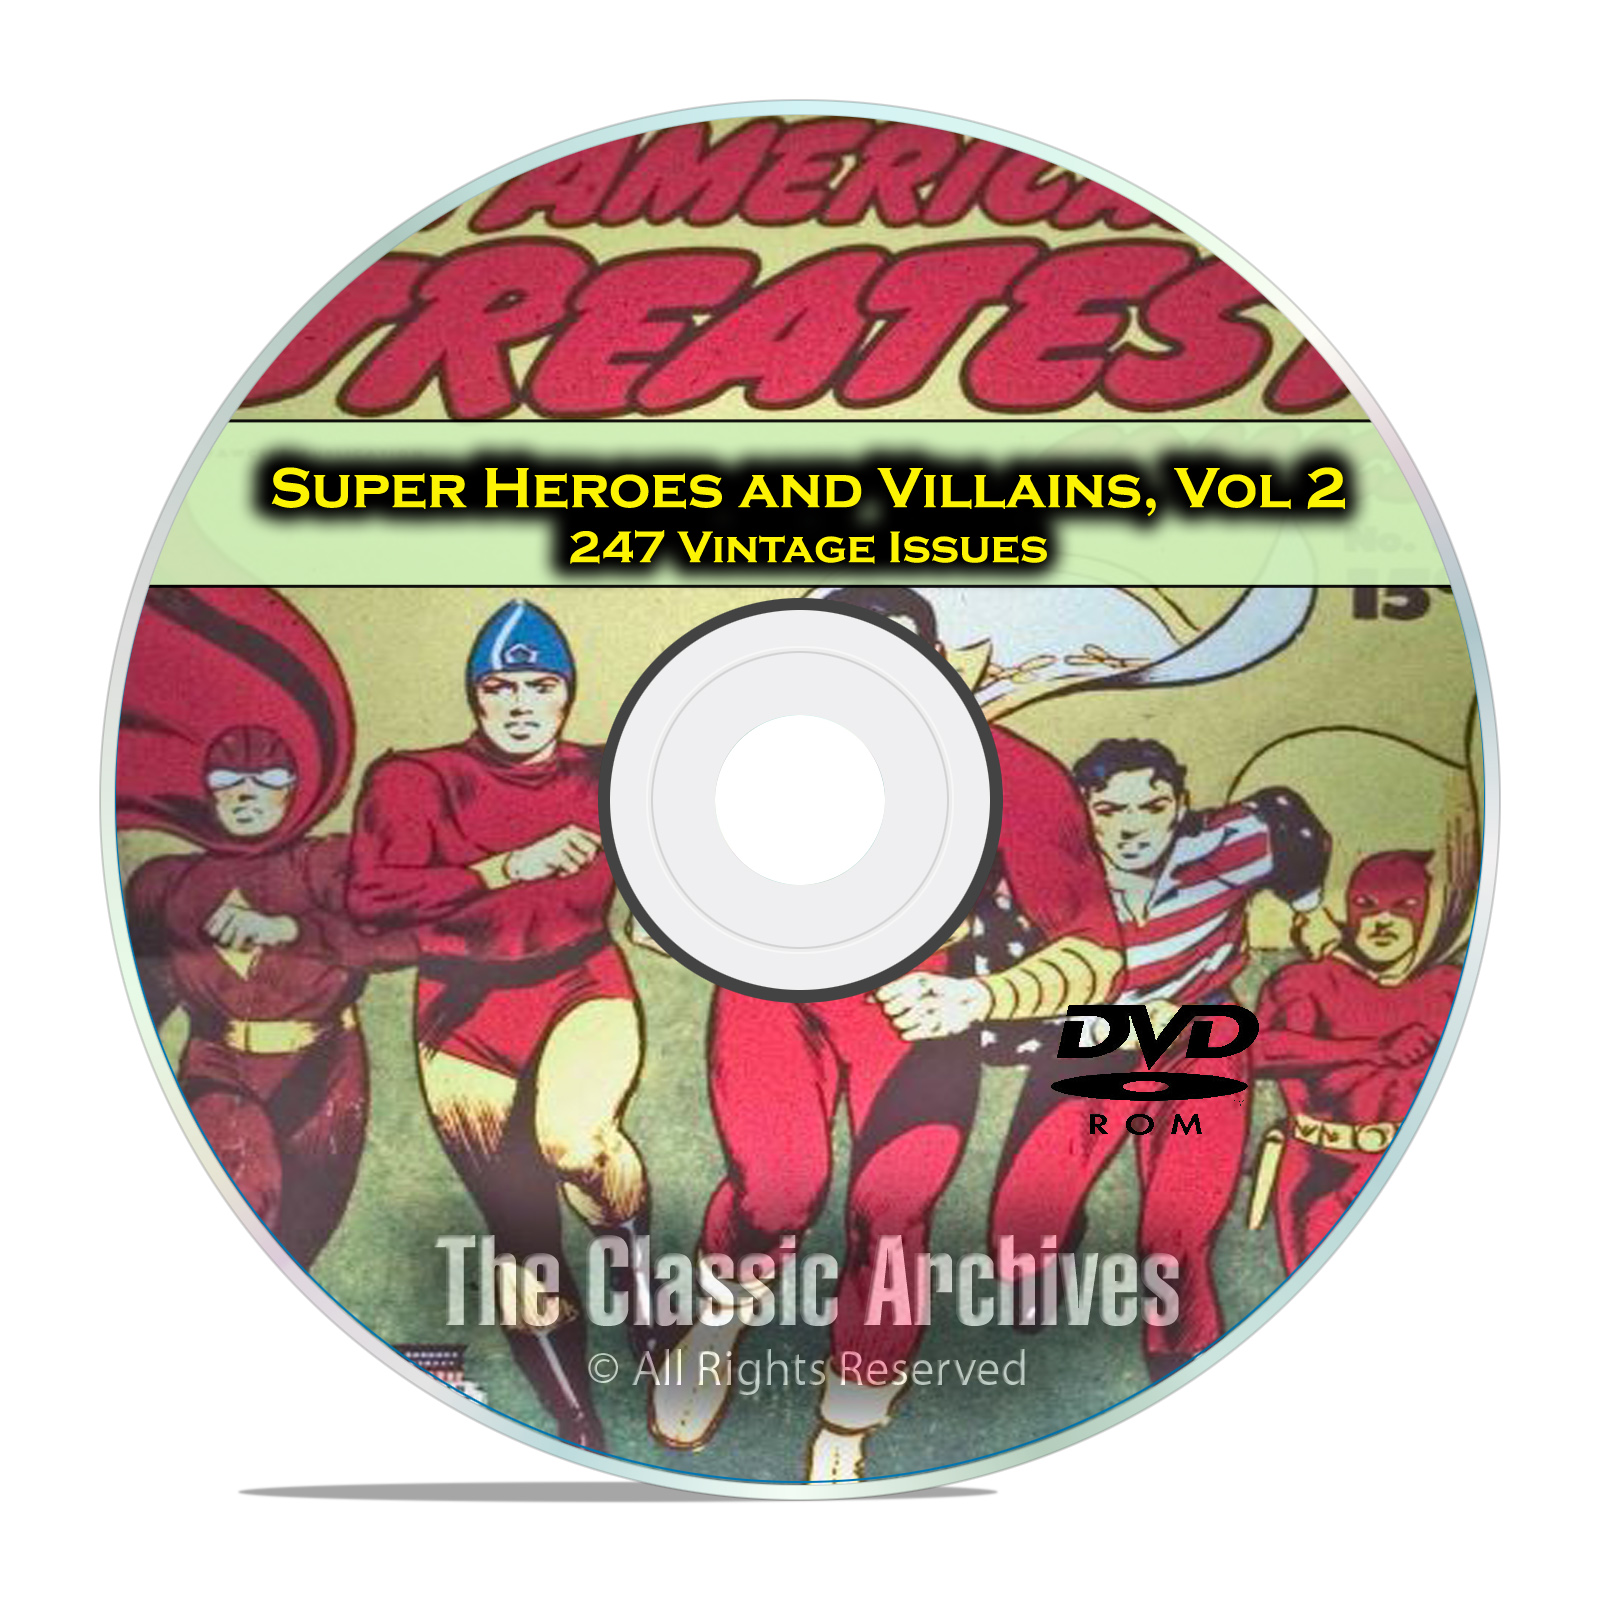 Super Hero, Villains, Vol 2, Whiz Comics, Nickel, Golden Age Comics DVD